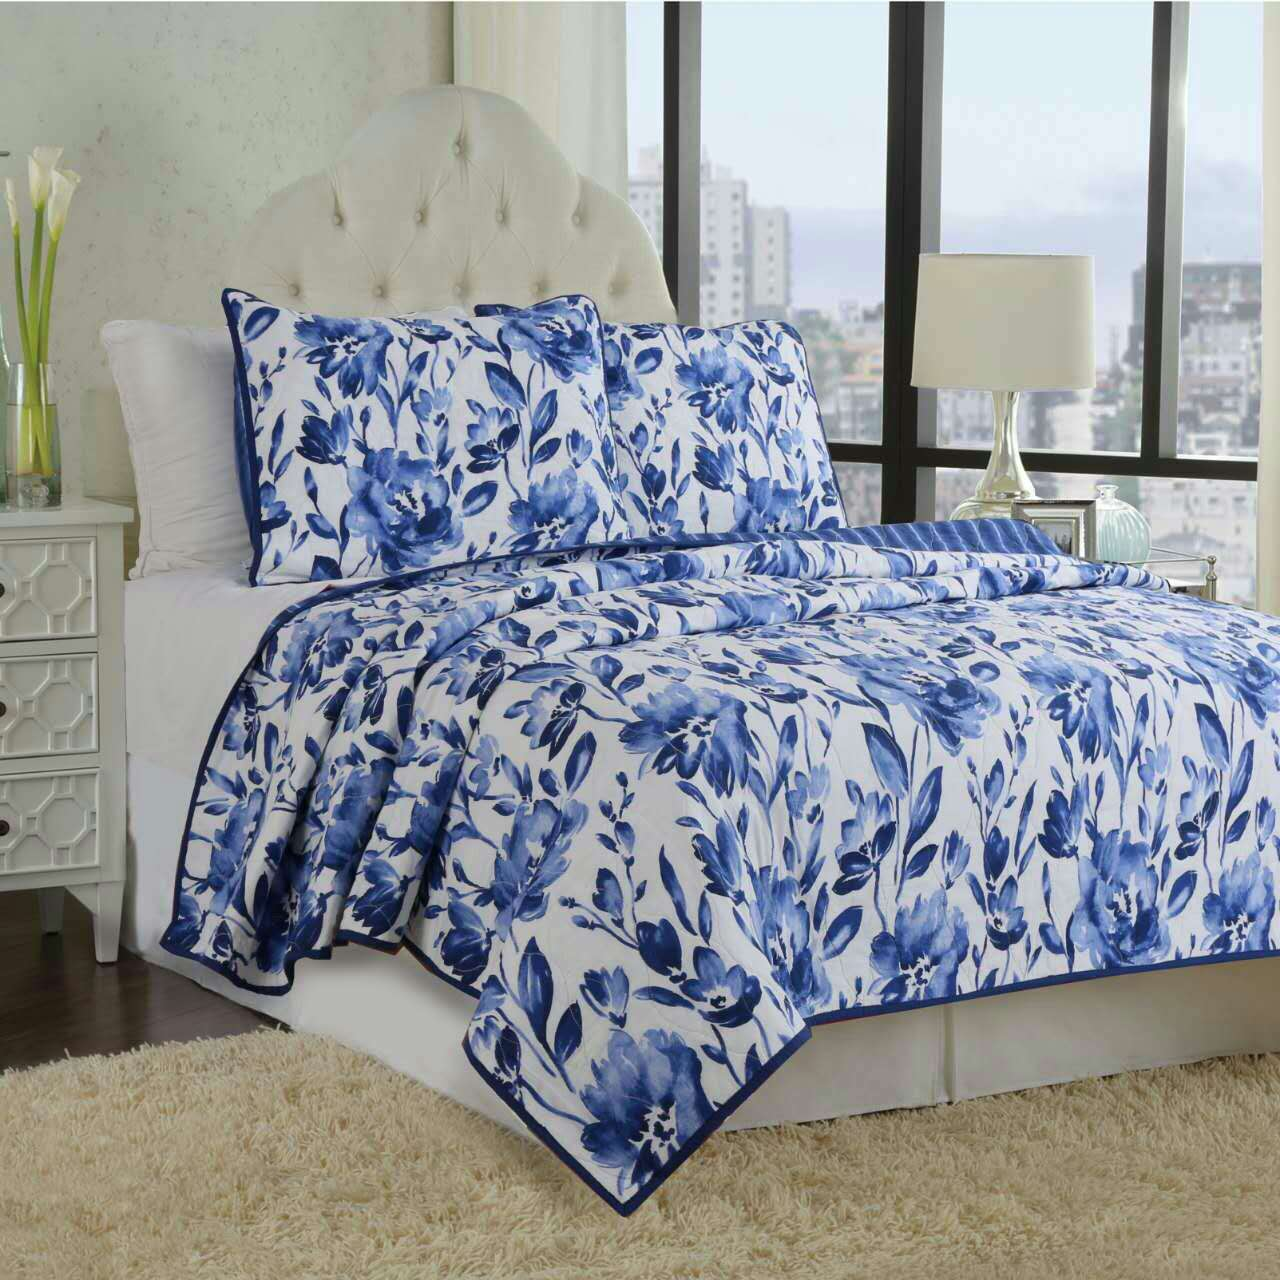 Blue Peony Print Patchwork Cotton King Size 3 Piece Bed In